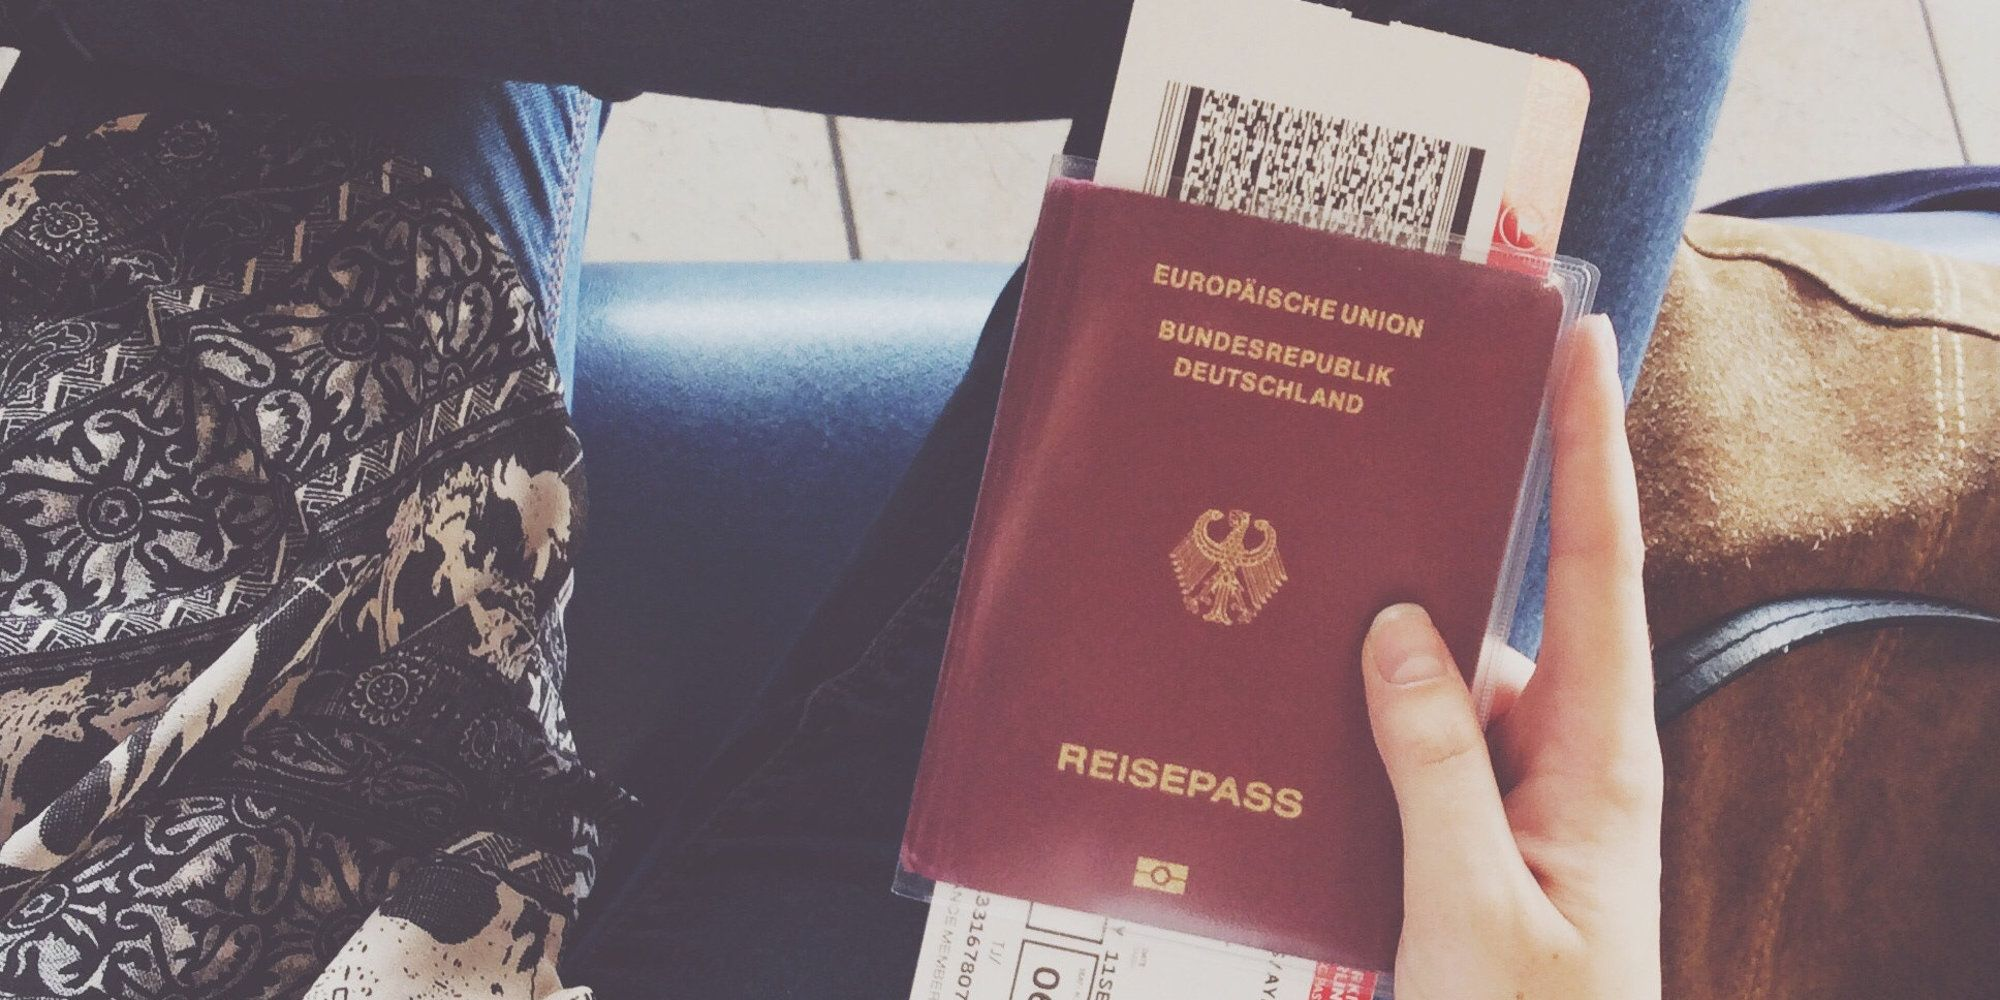 Why You Should Never Take A Photo Of Your Boarding Pass